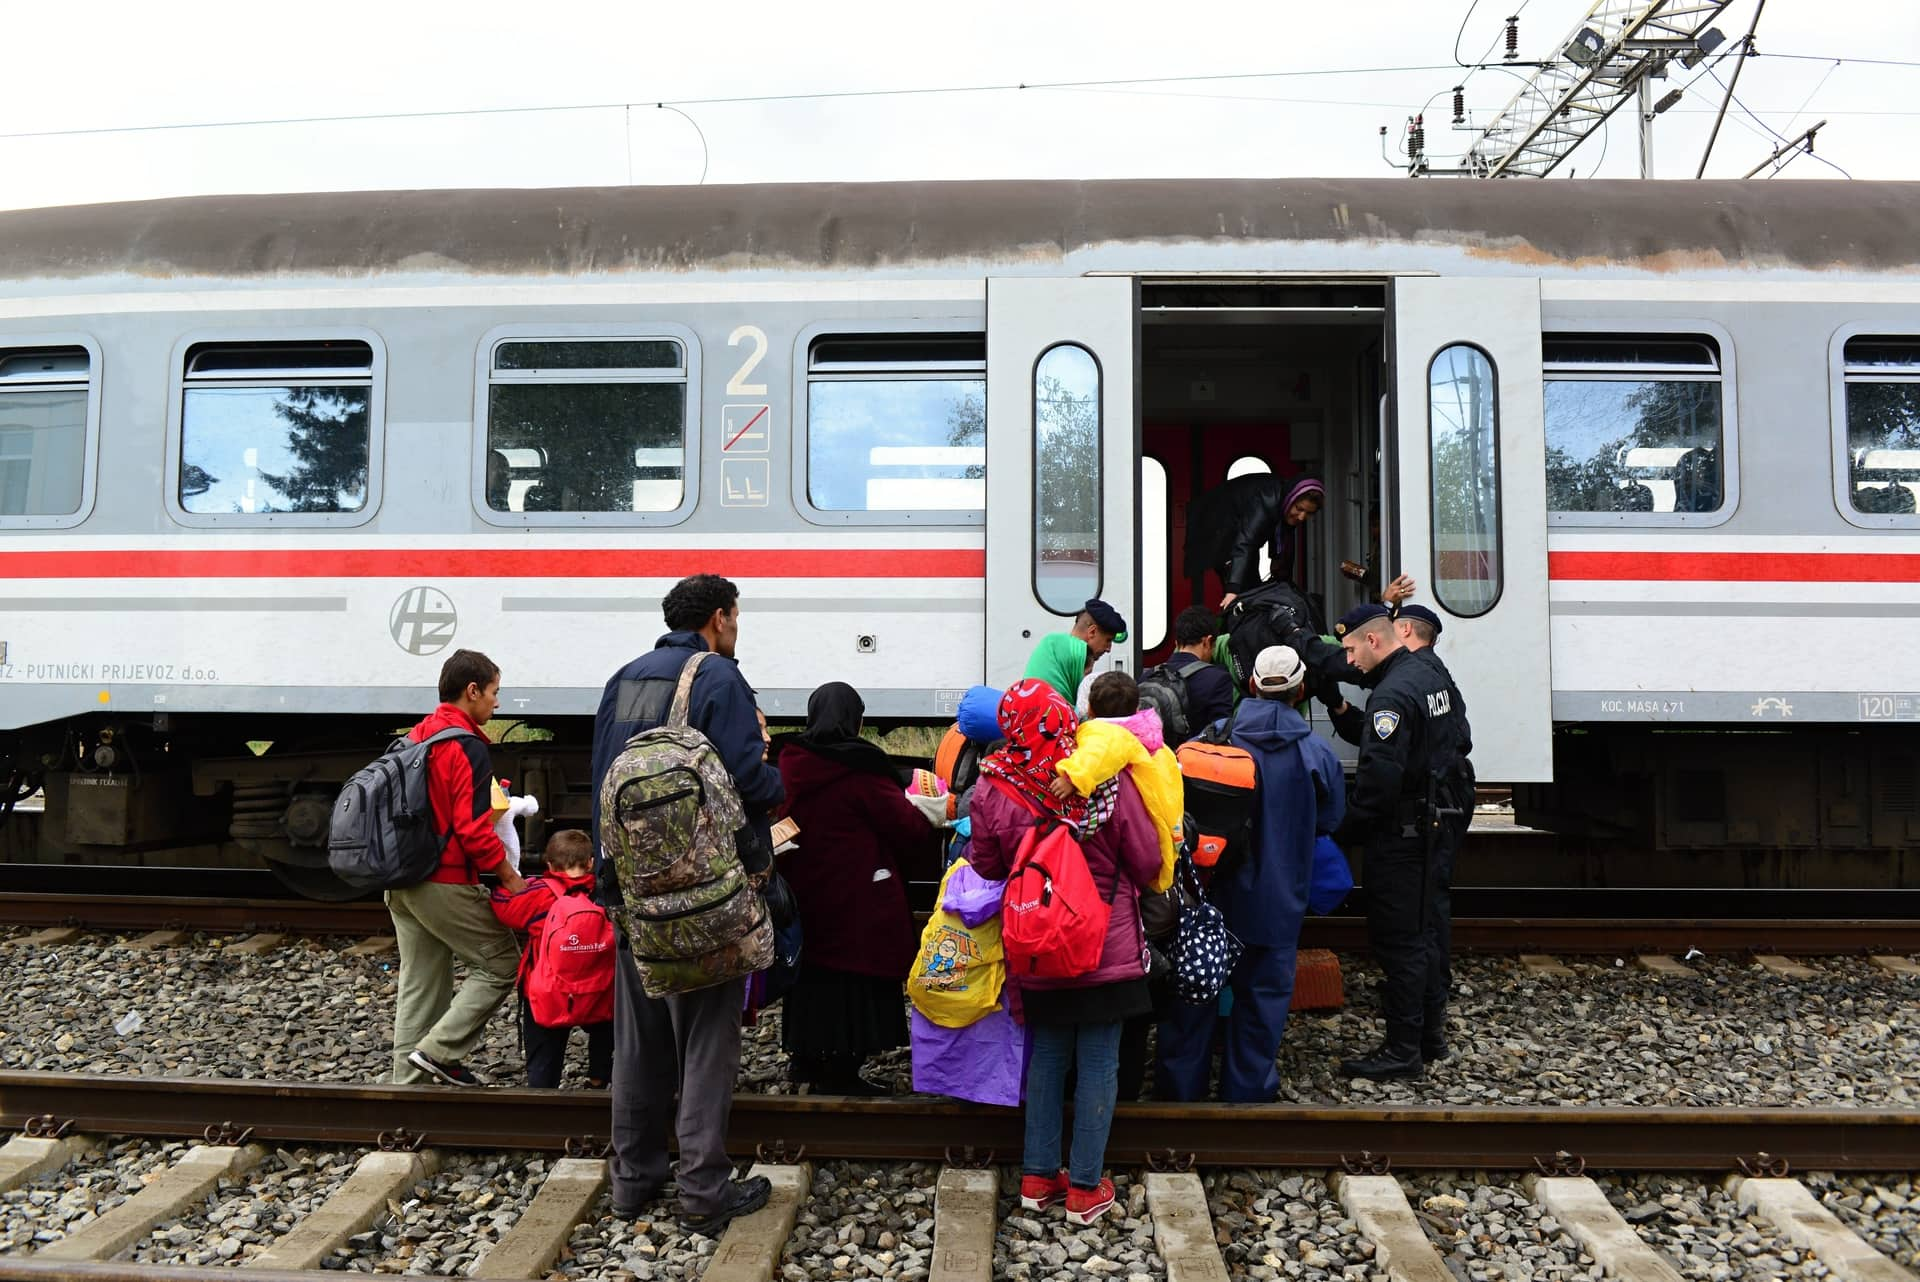 October 5 2015; Tovarnik in Croatia. Croatian police assist refugees get into train which will go to Hungary.October 5 2015; Tovarnik in Croatia.